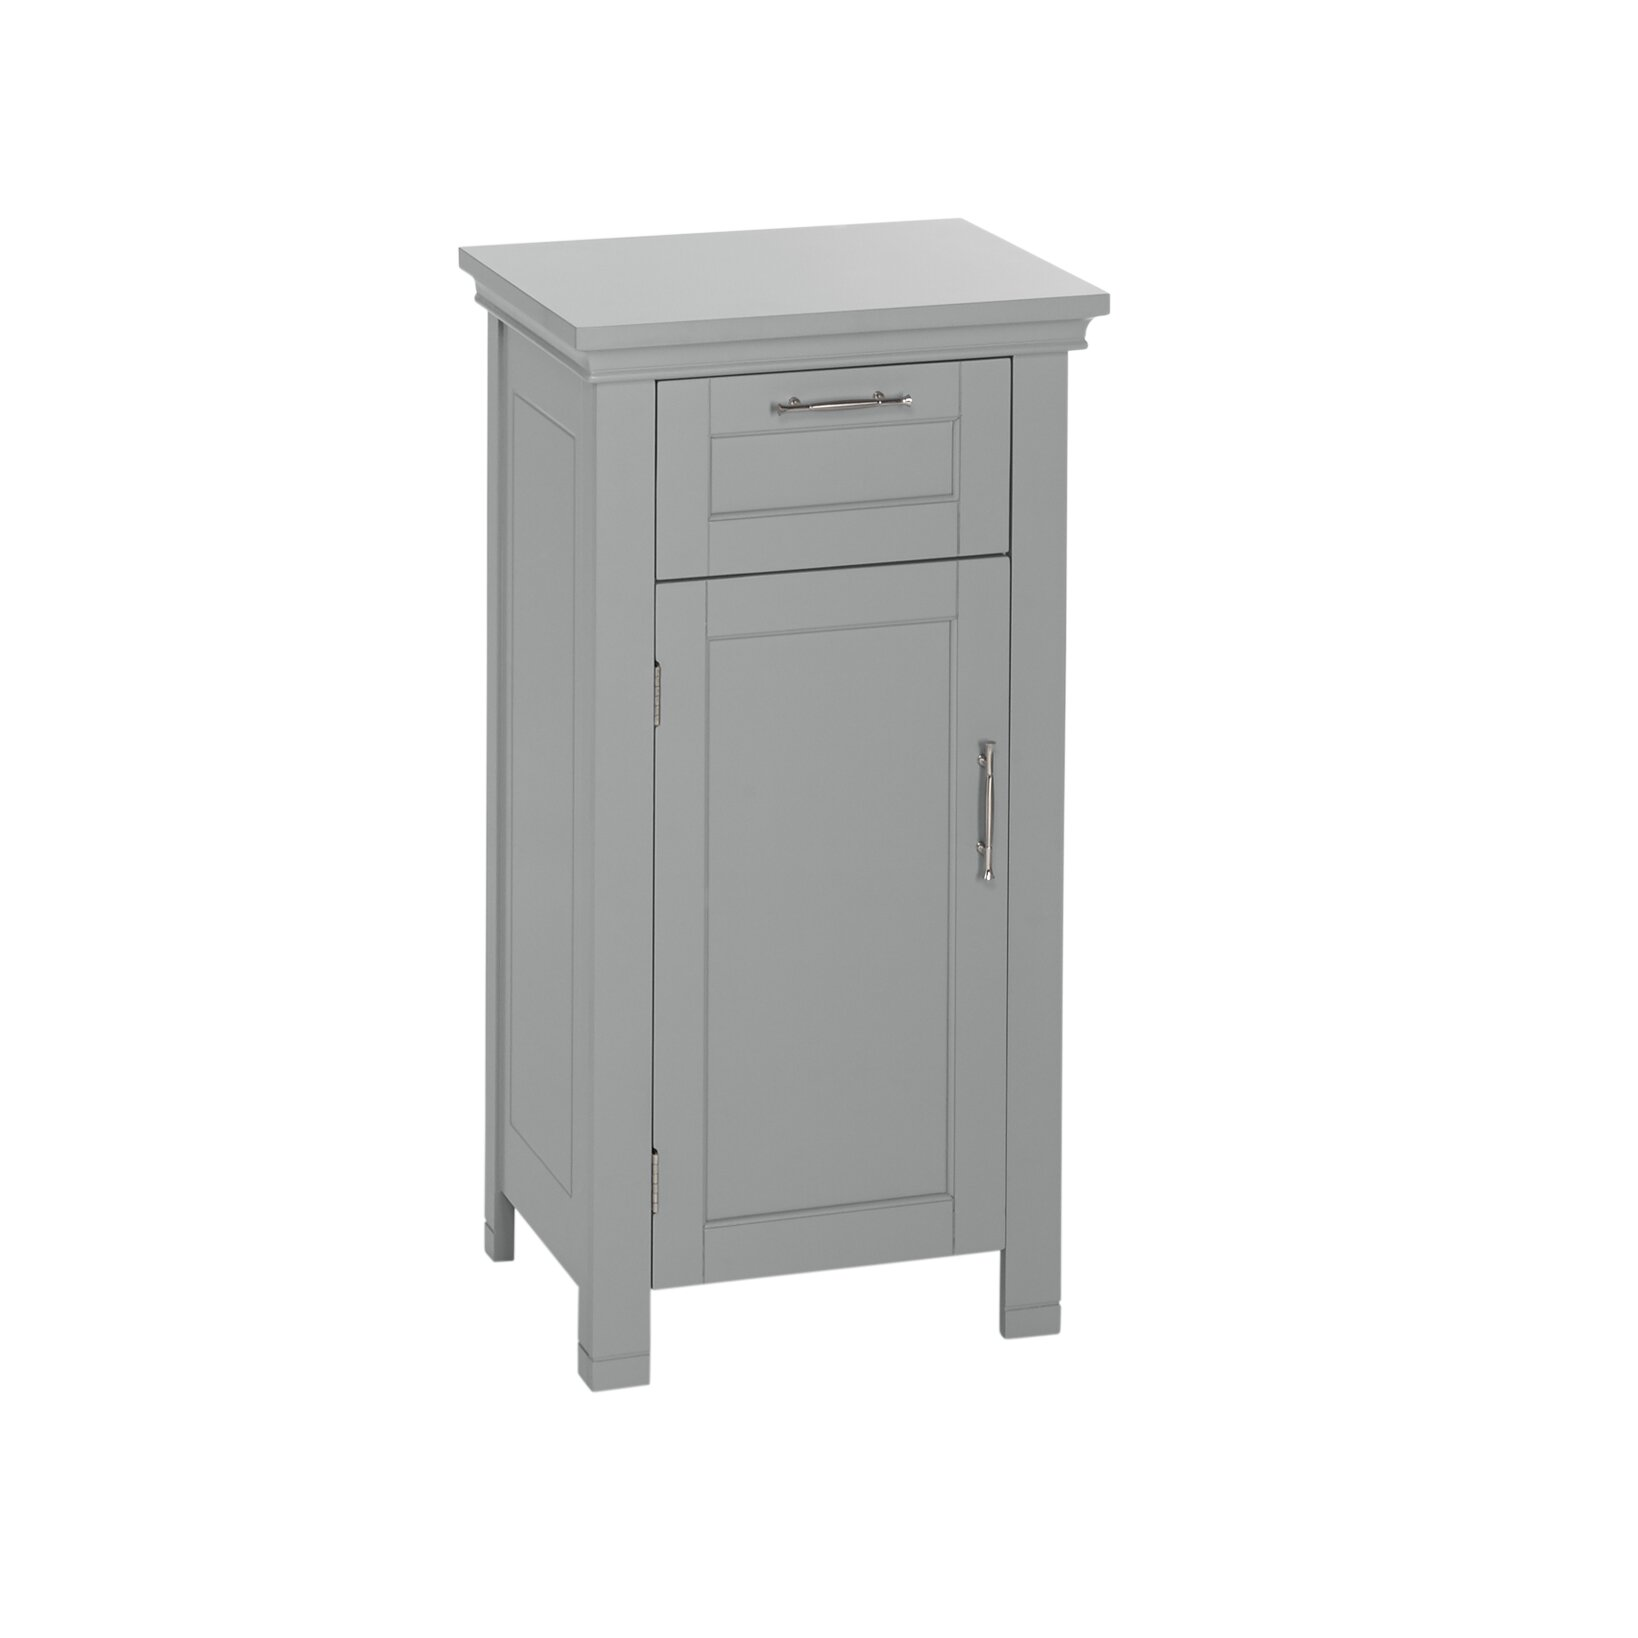 Riverridge home products somerset 16 x 30 free standing - Free standing linen cabinets for bathroom ...